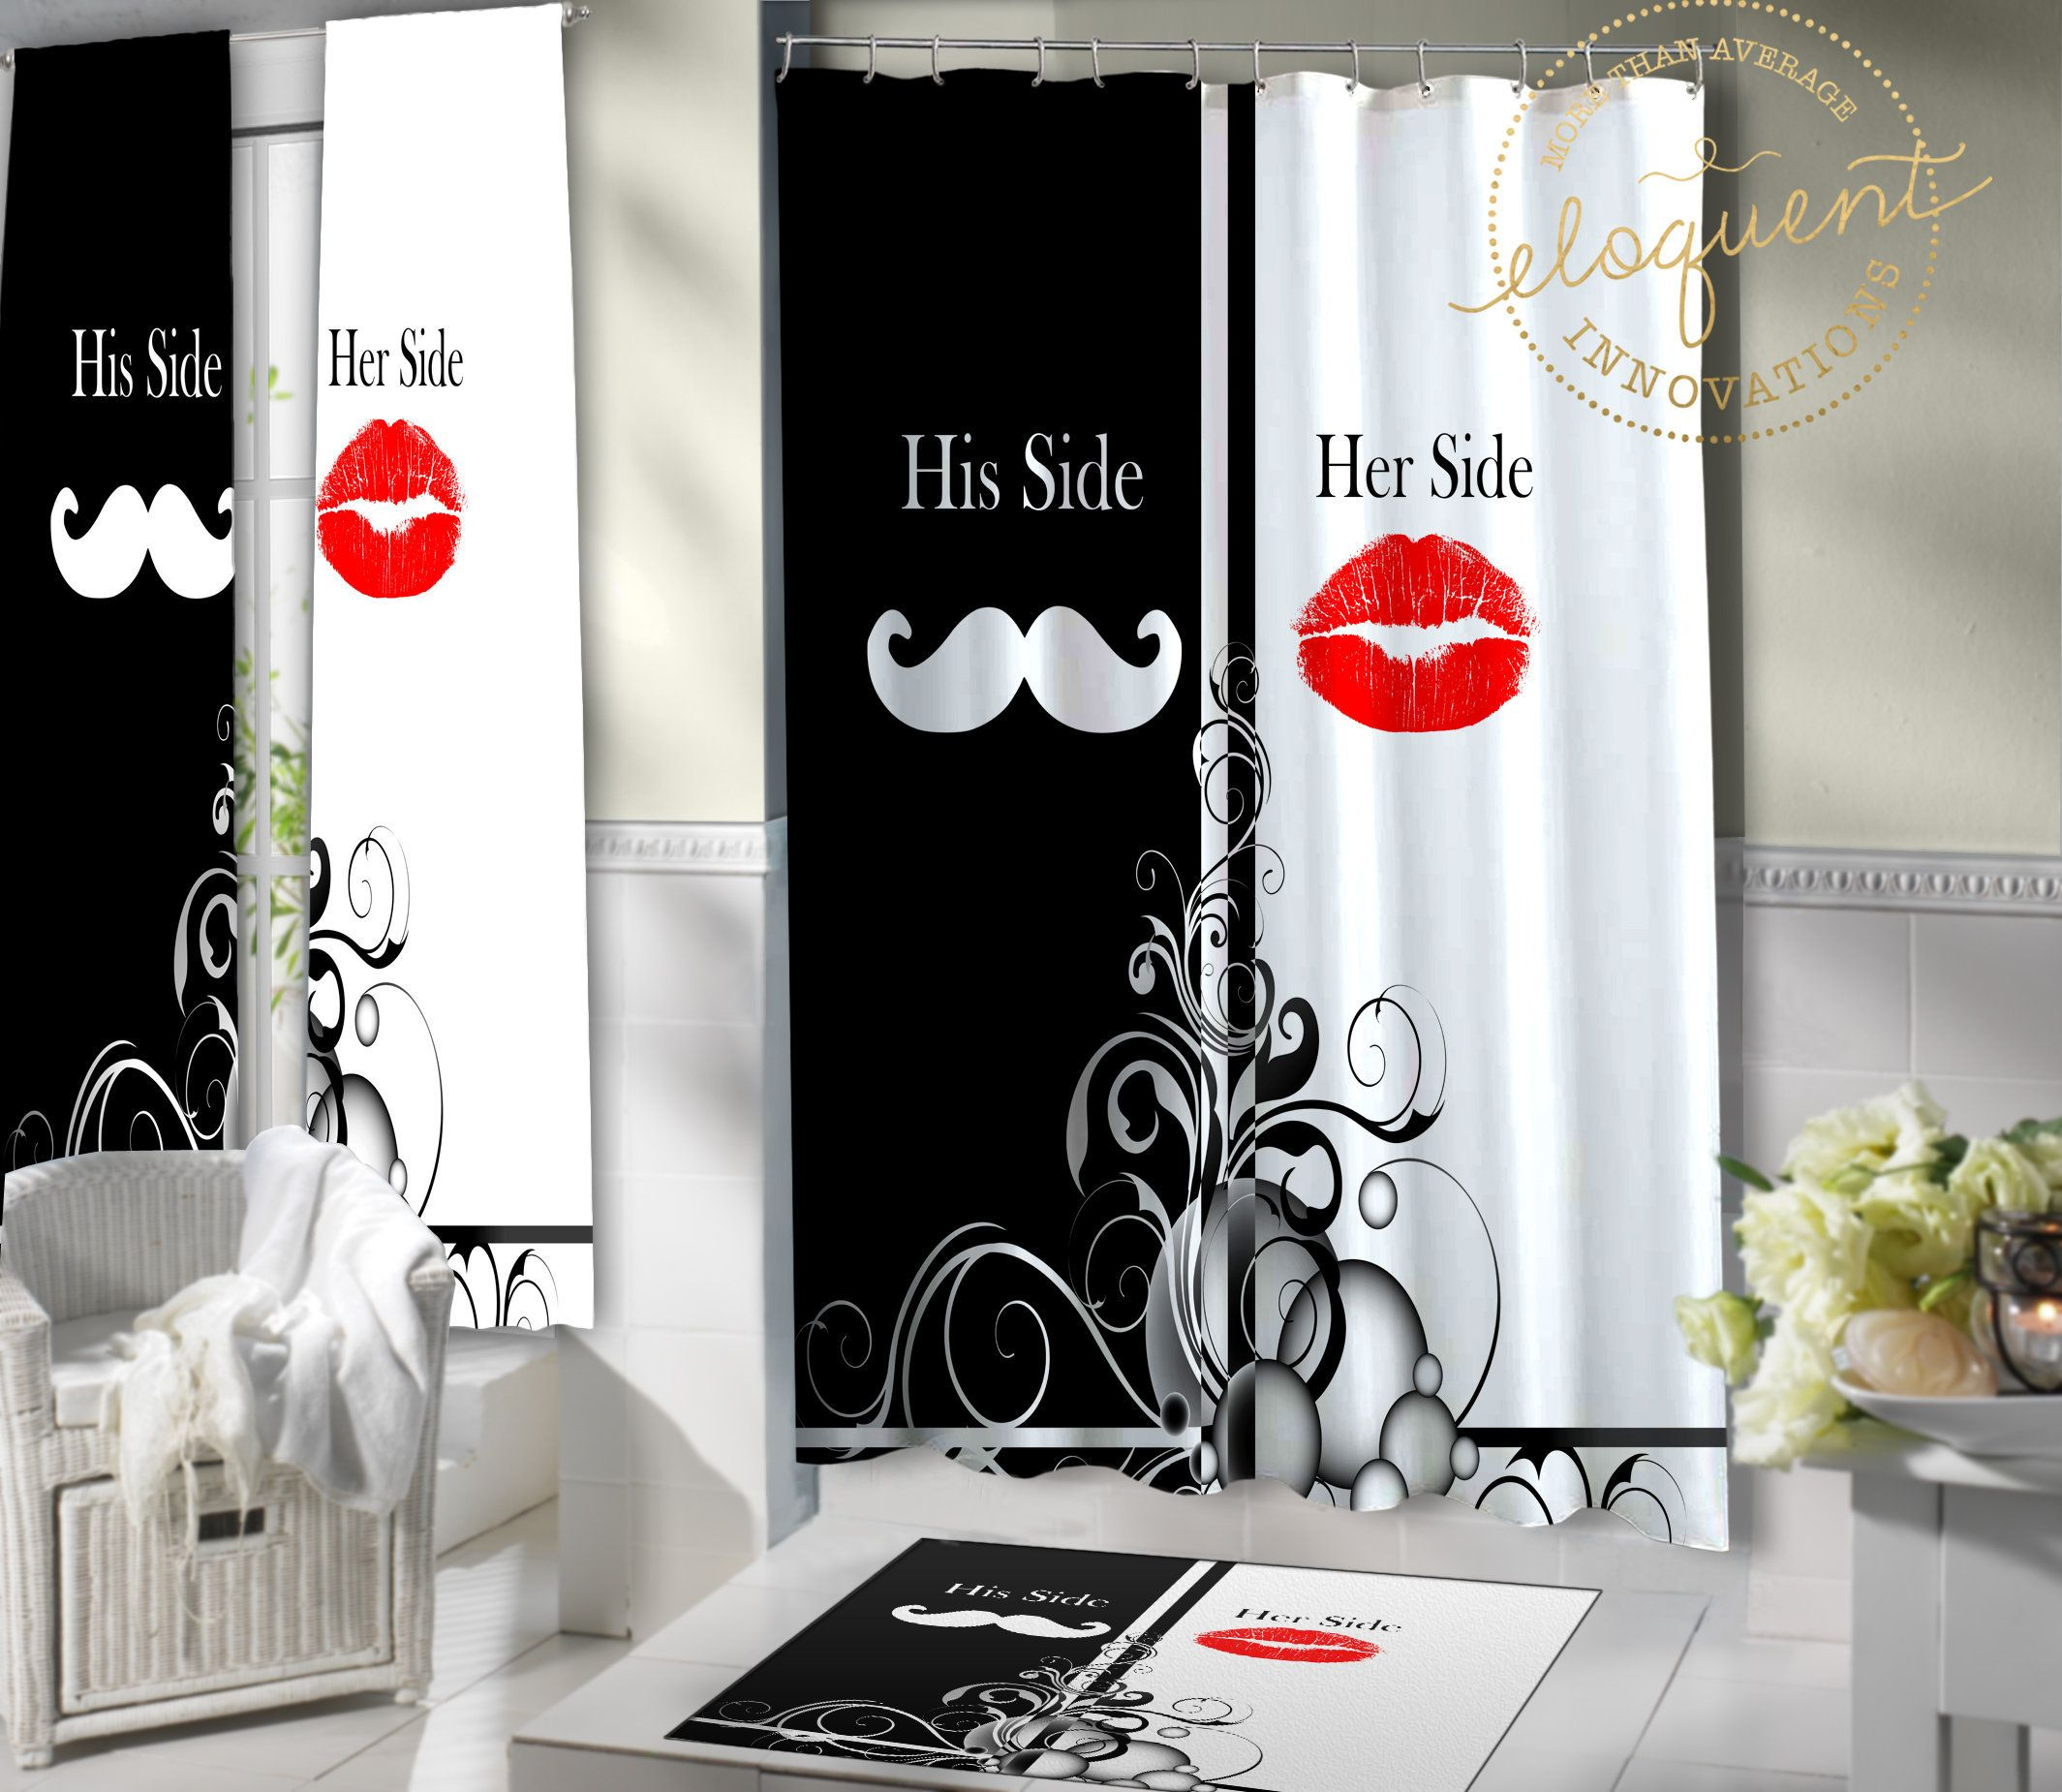 Fun Shower Curtain with His and Hers Sides, Mustache and